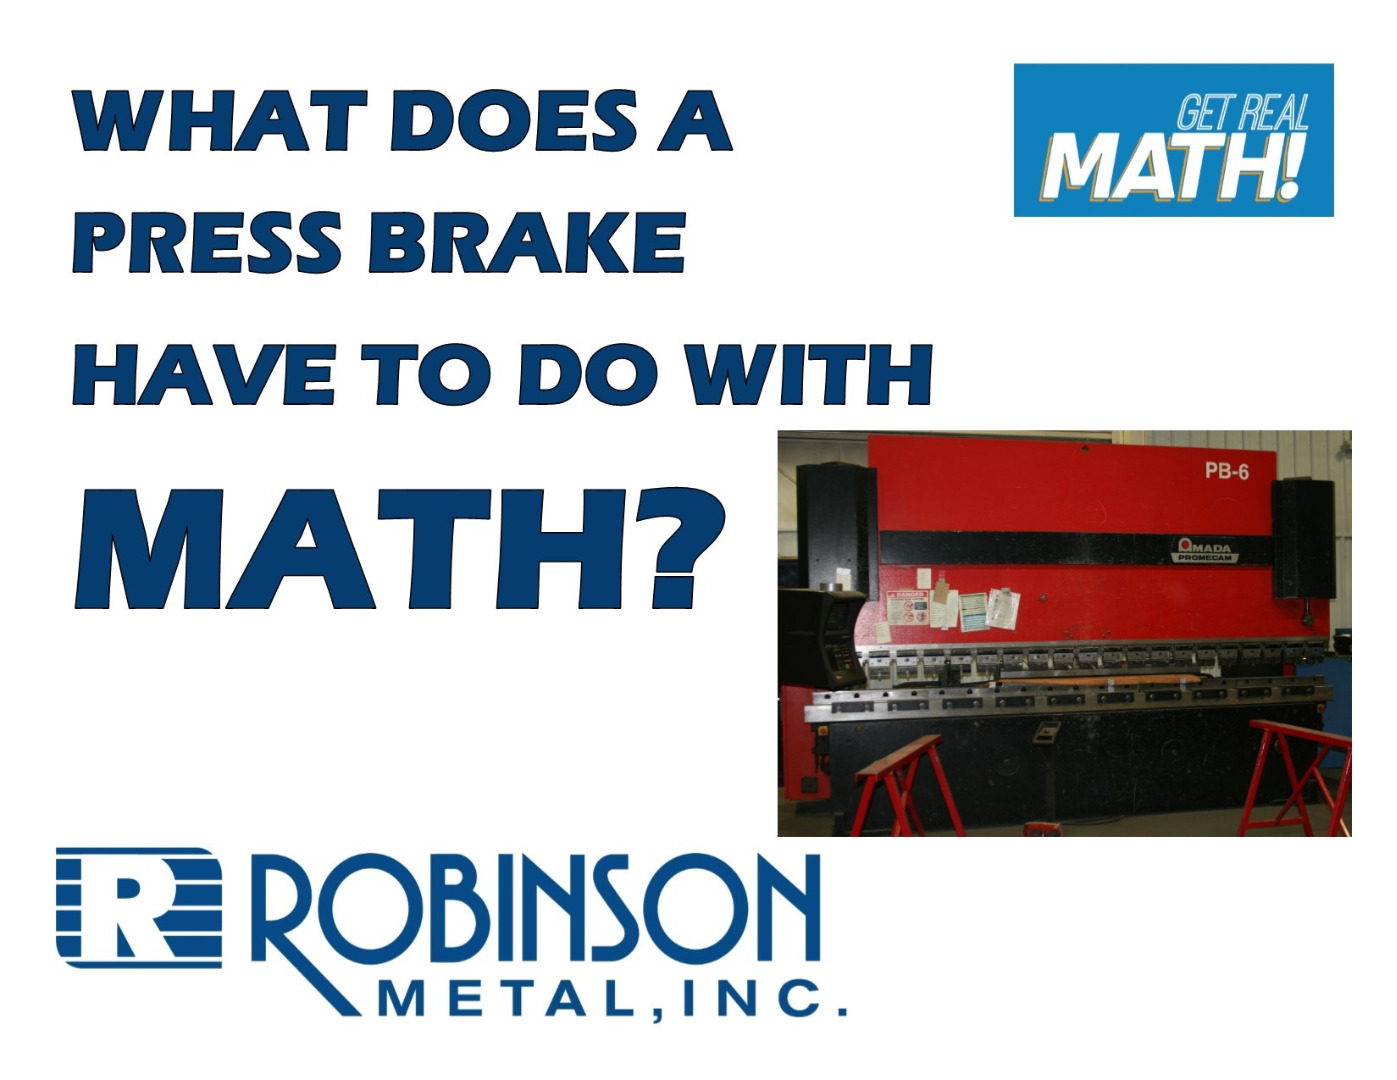 What does a press brake have to do with math?